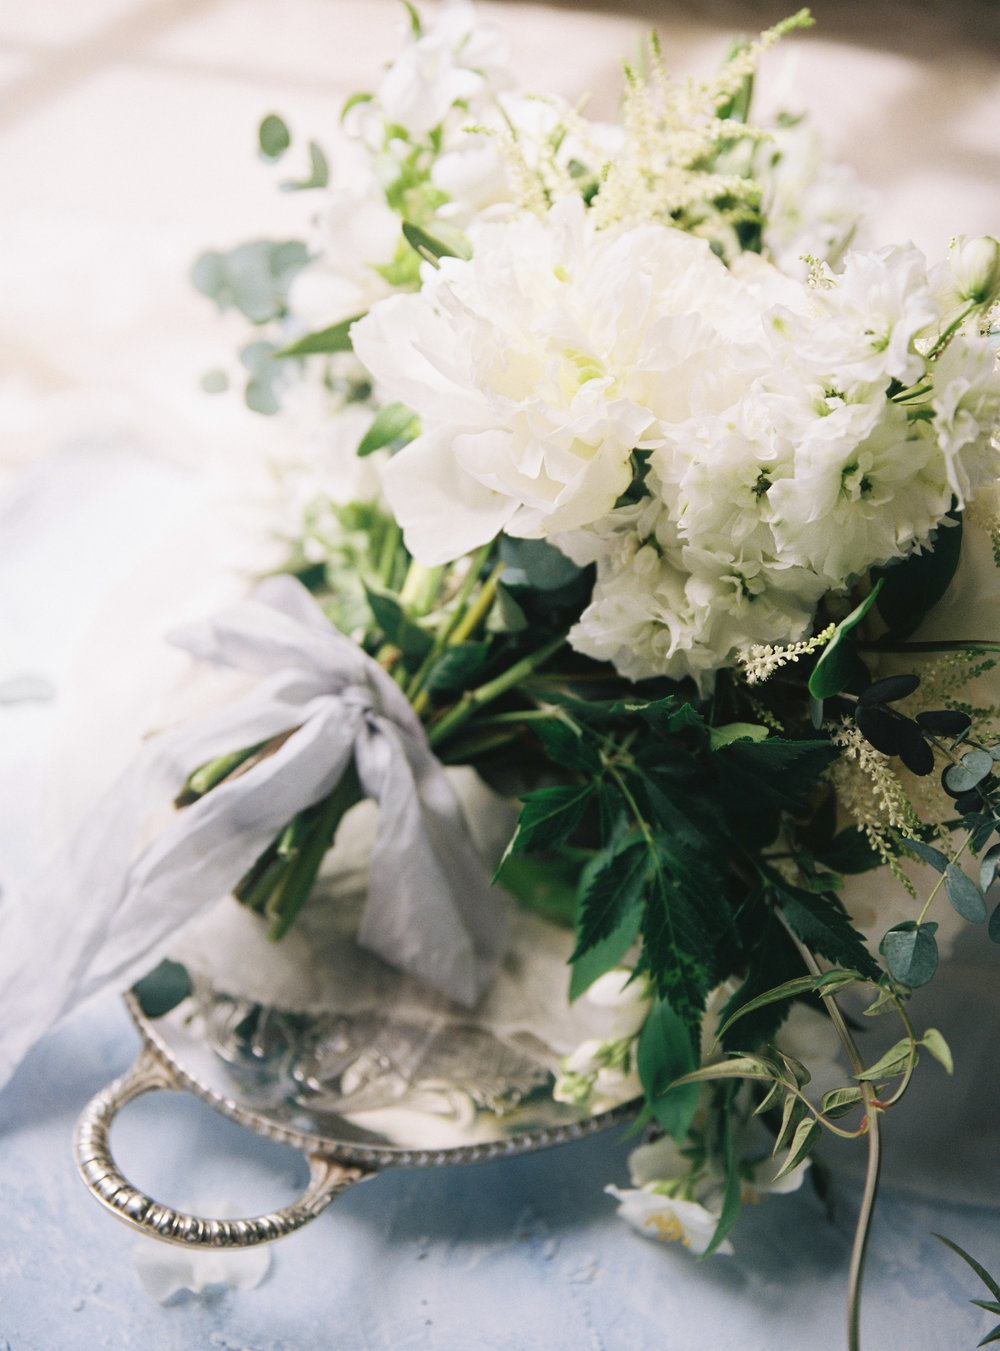 Luxury Wedding Planner UK | A Timeless English Inspired Editorial with Georgian Blue | Cotswolds Wedding White and Silver Toned Green Neutral Tones | The Royal Crescent Hotel Bath | Alexander J Collins Photography 13 .jpg